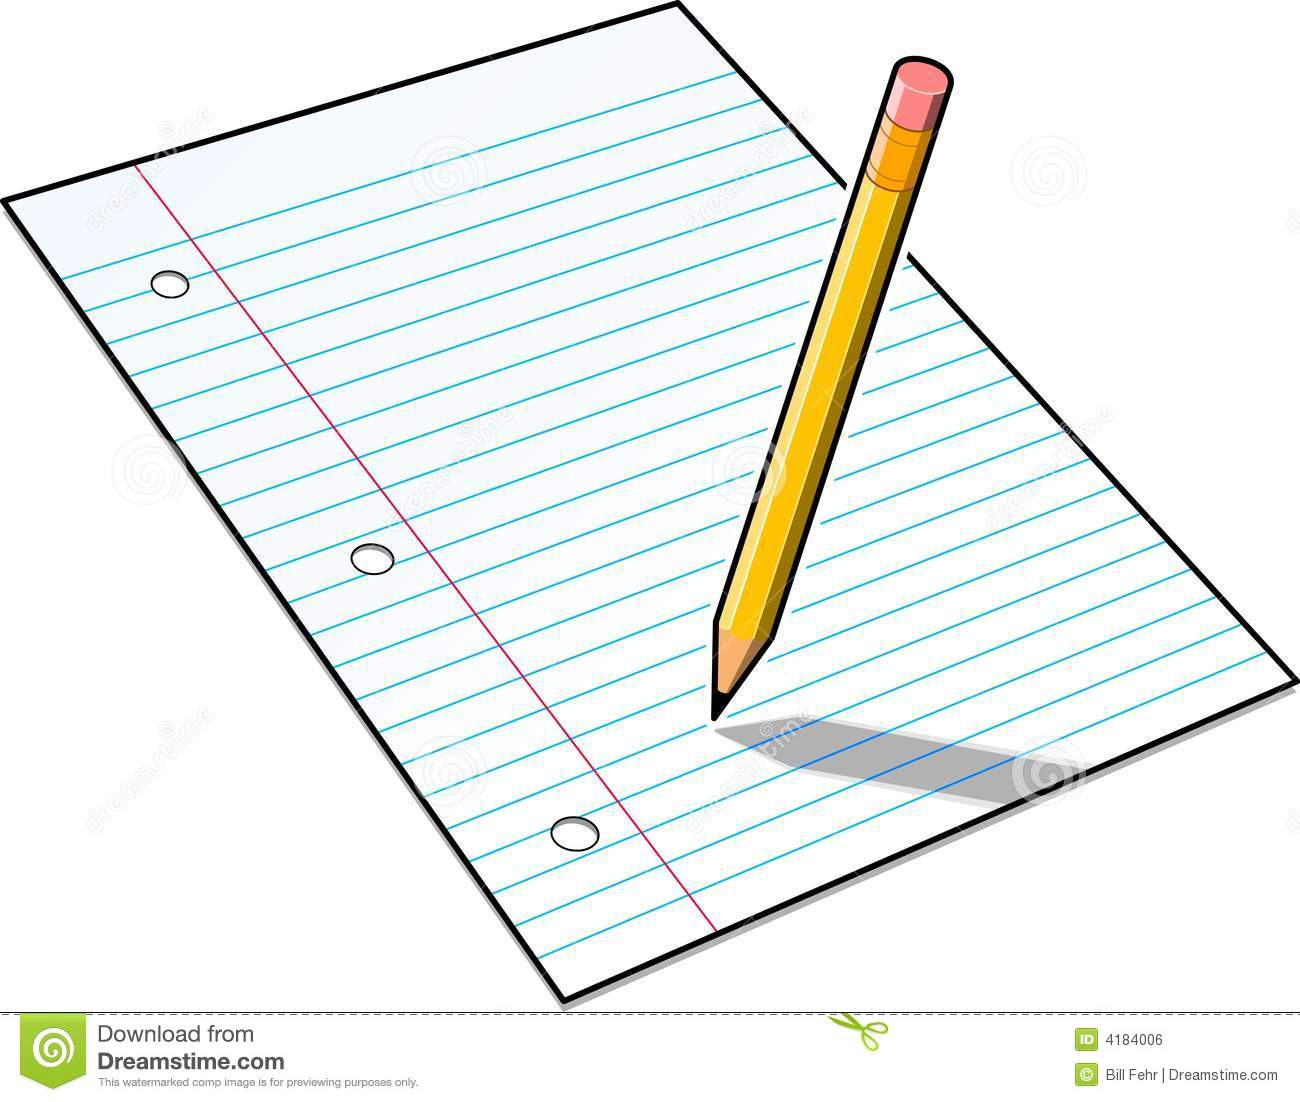 Notebook clipart homework paper Pencil homework Clip collection Paper